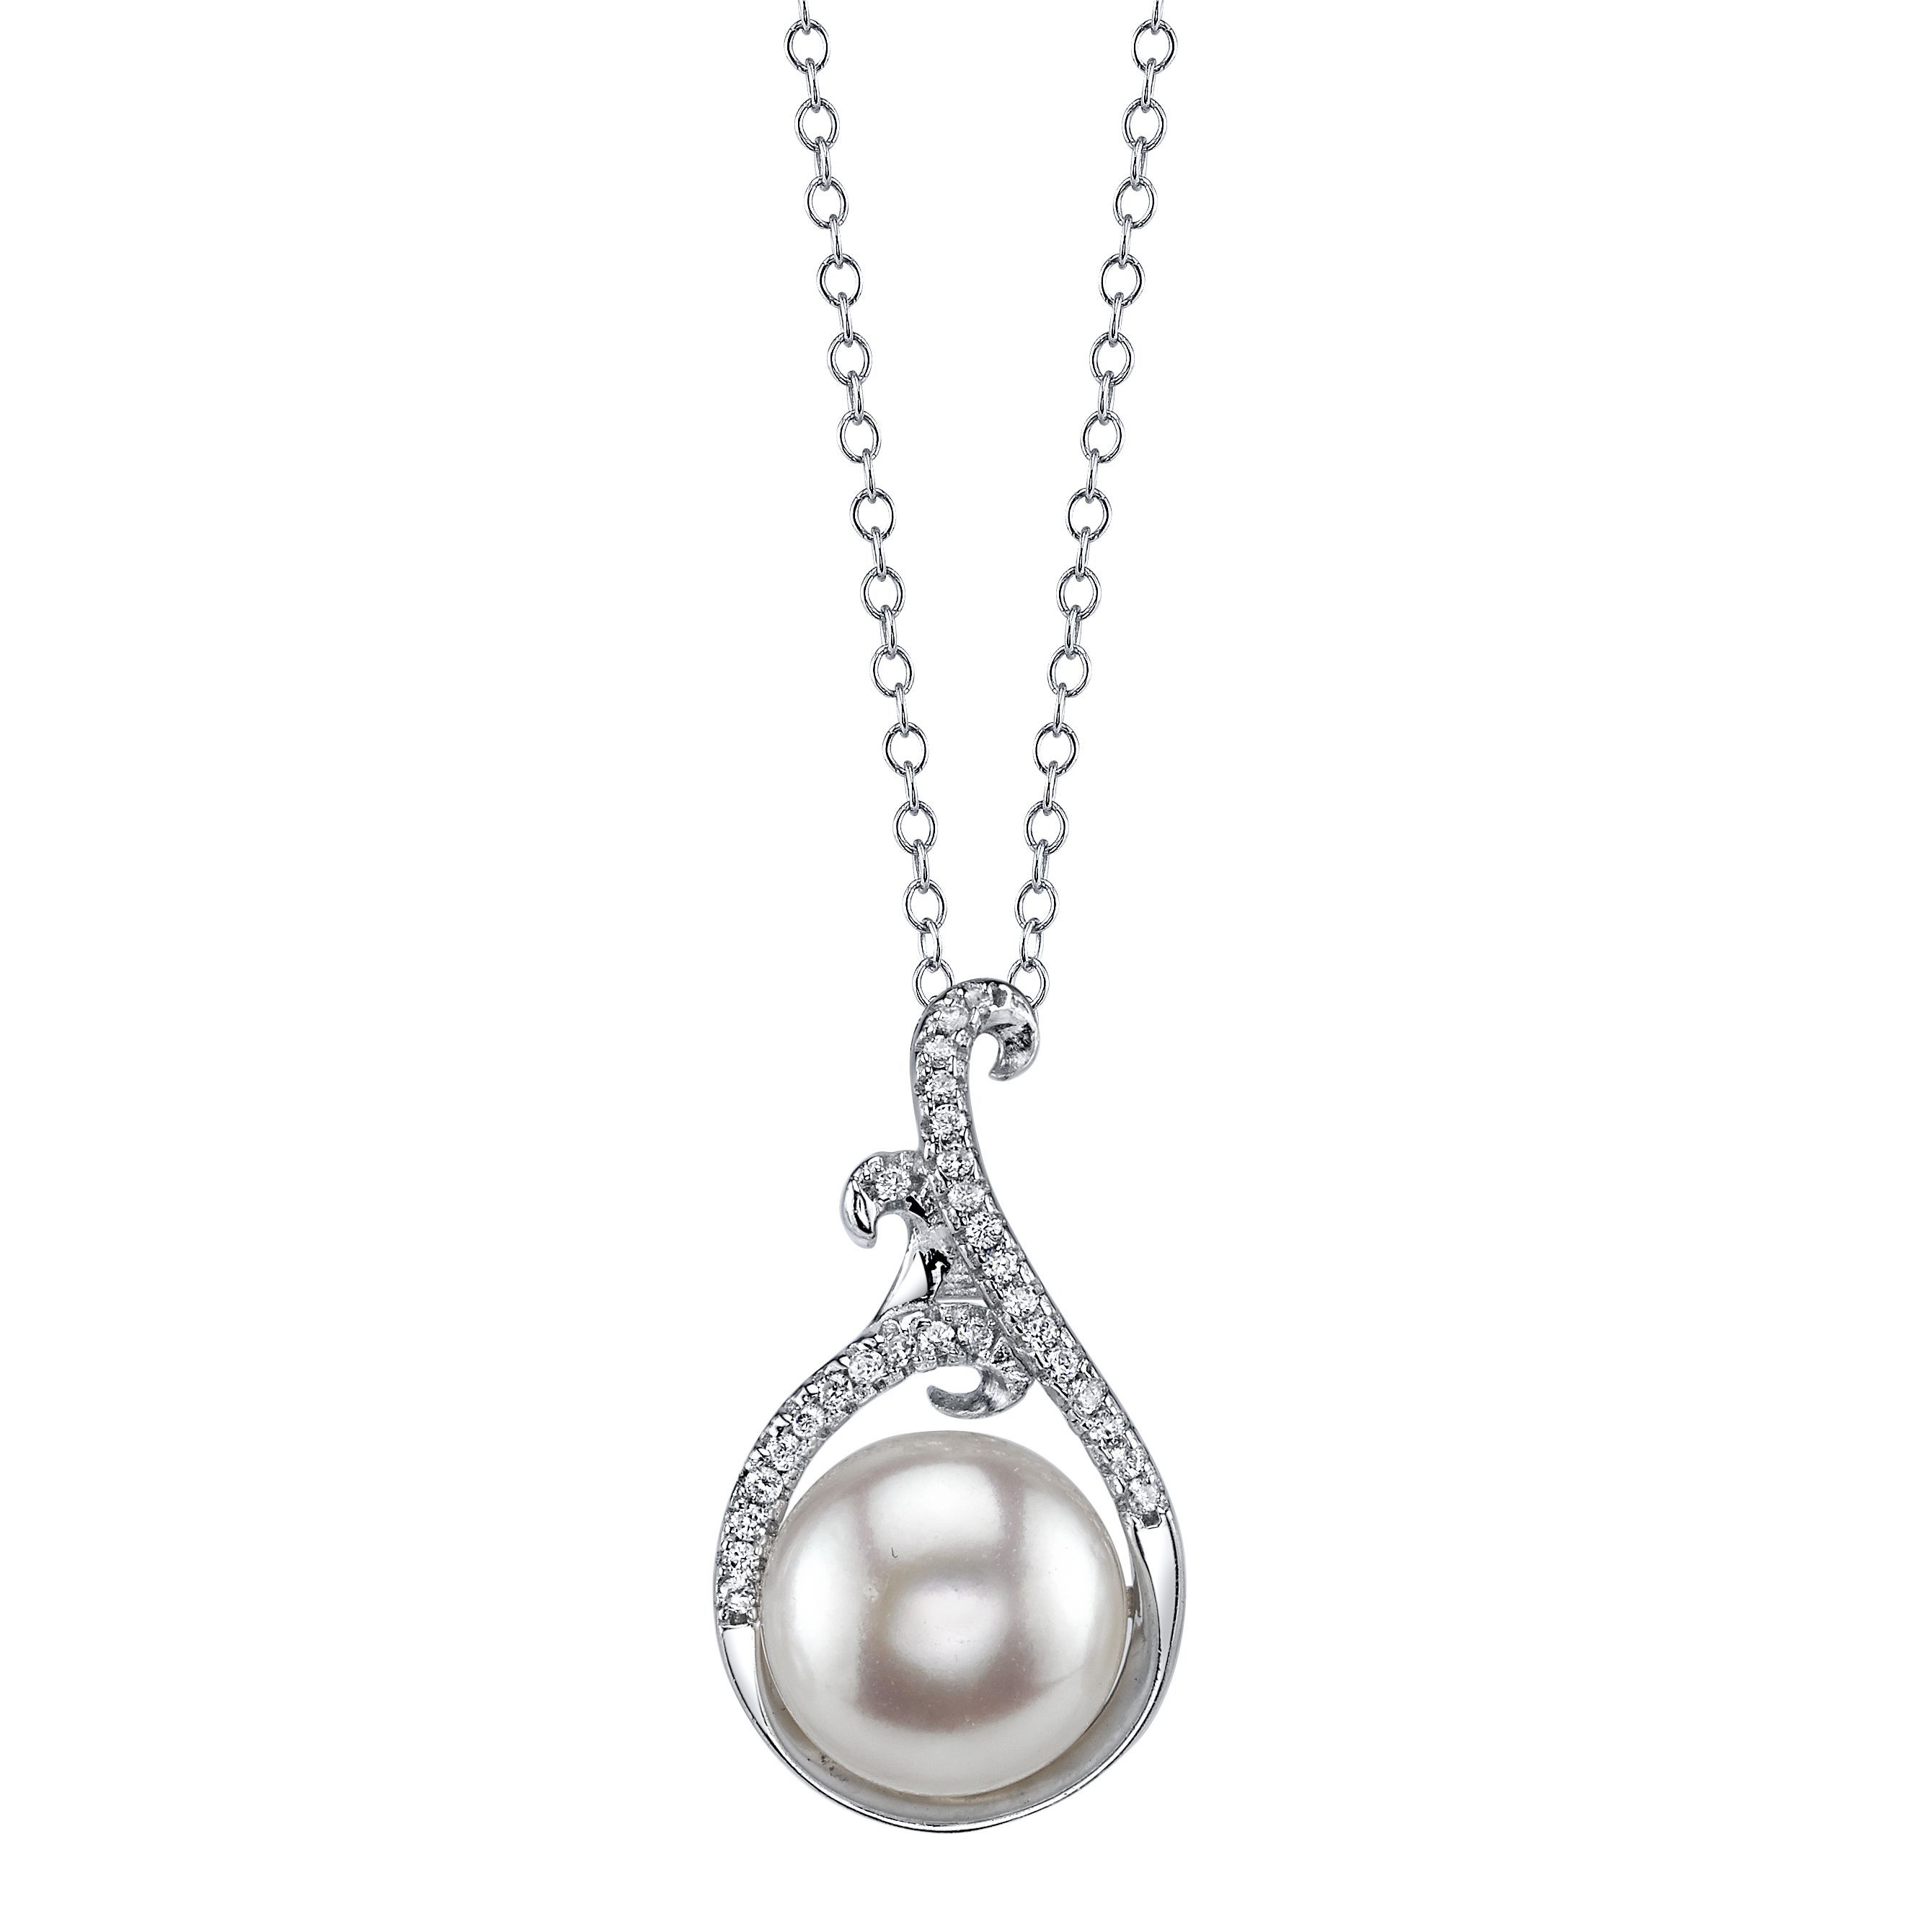 Radiance pearl sterling silver white freshwater pearl and crystal